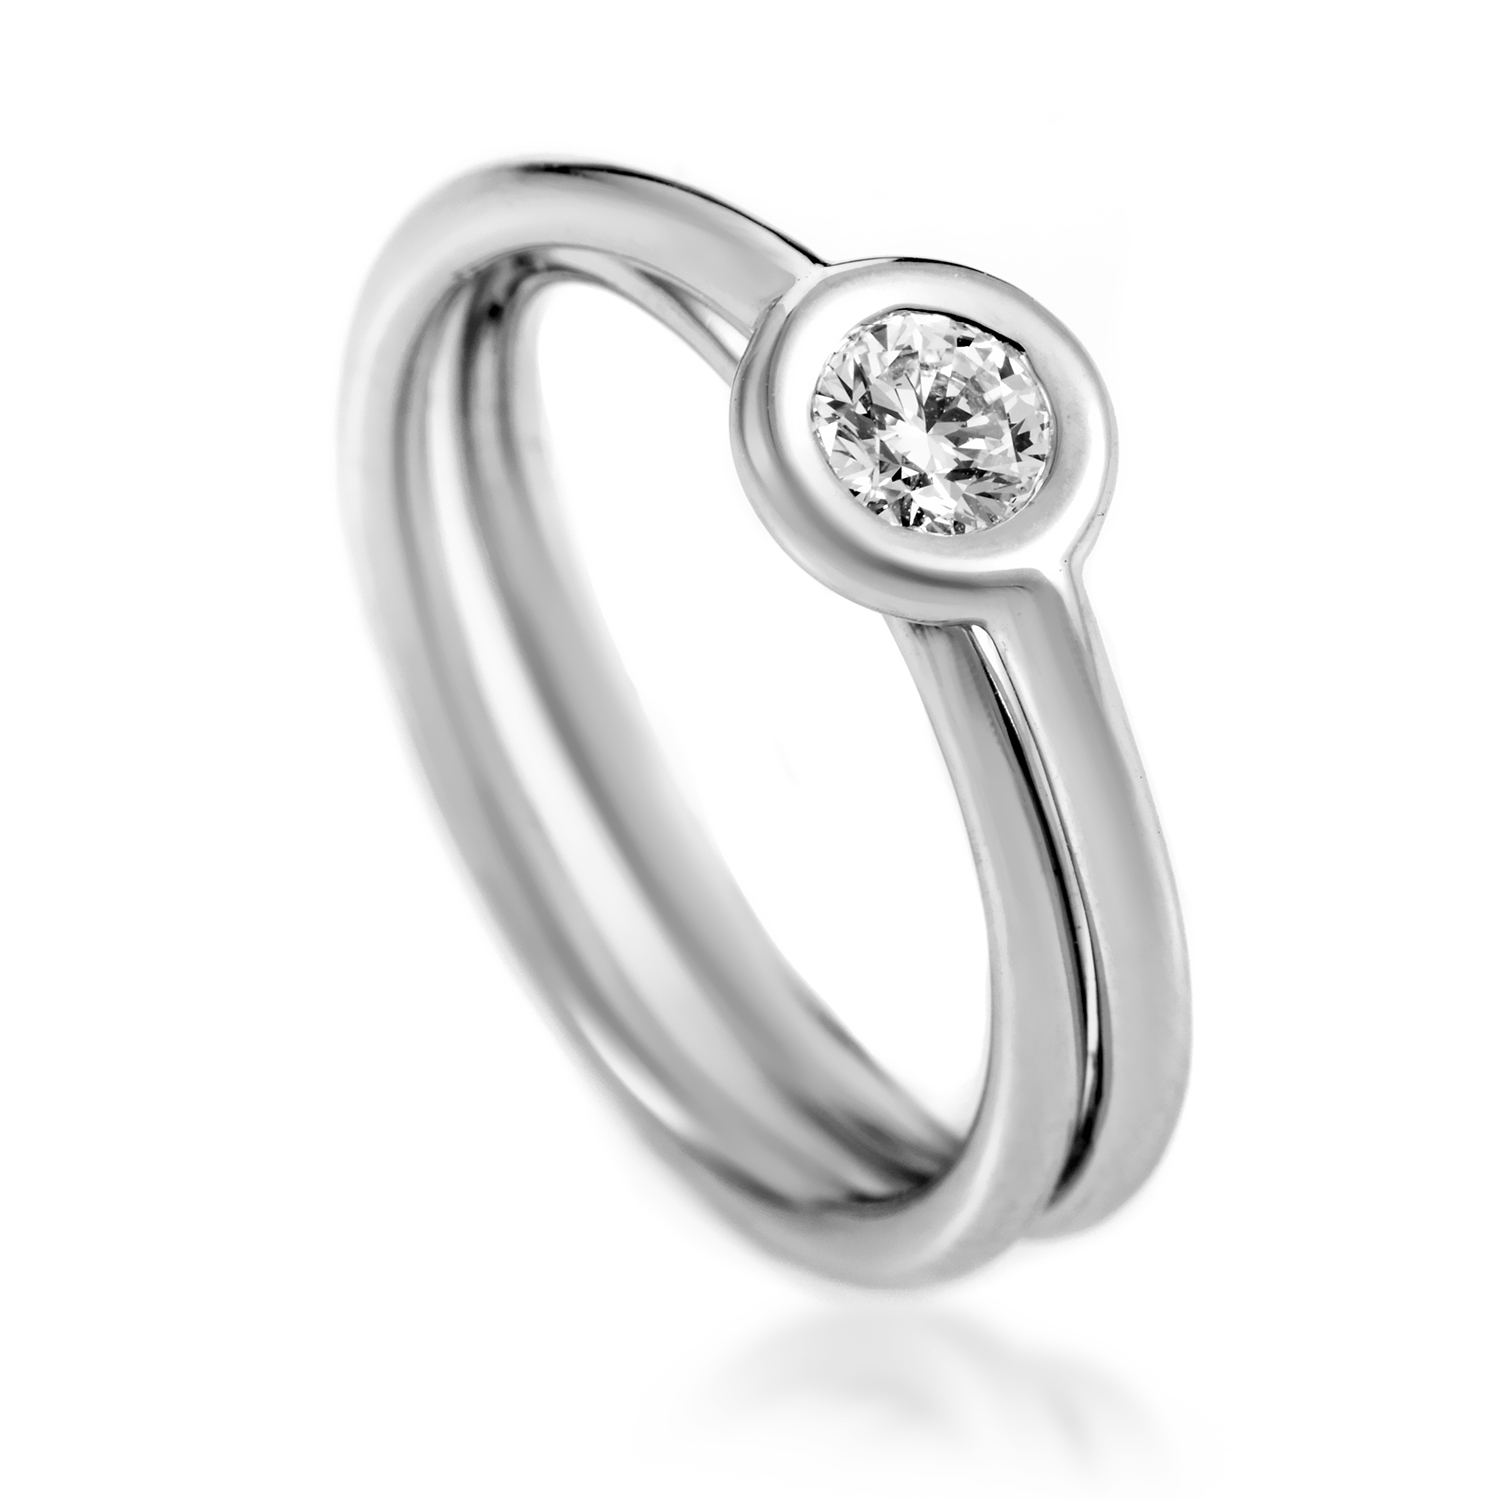 Hermès Women's 18K White Gold .27ct Diamond Solitaire Engagement Ring